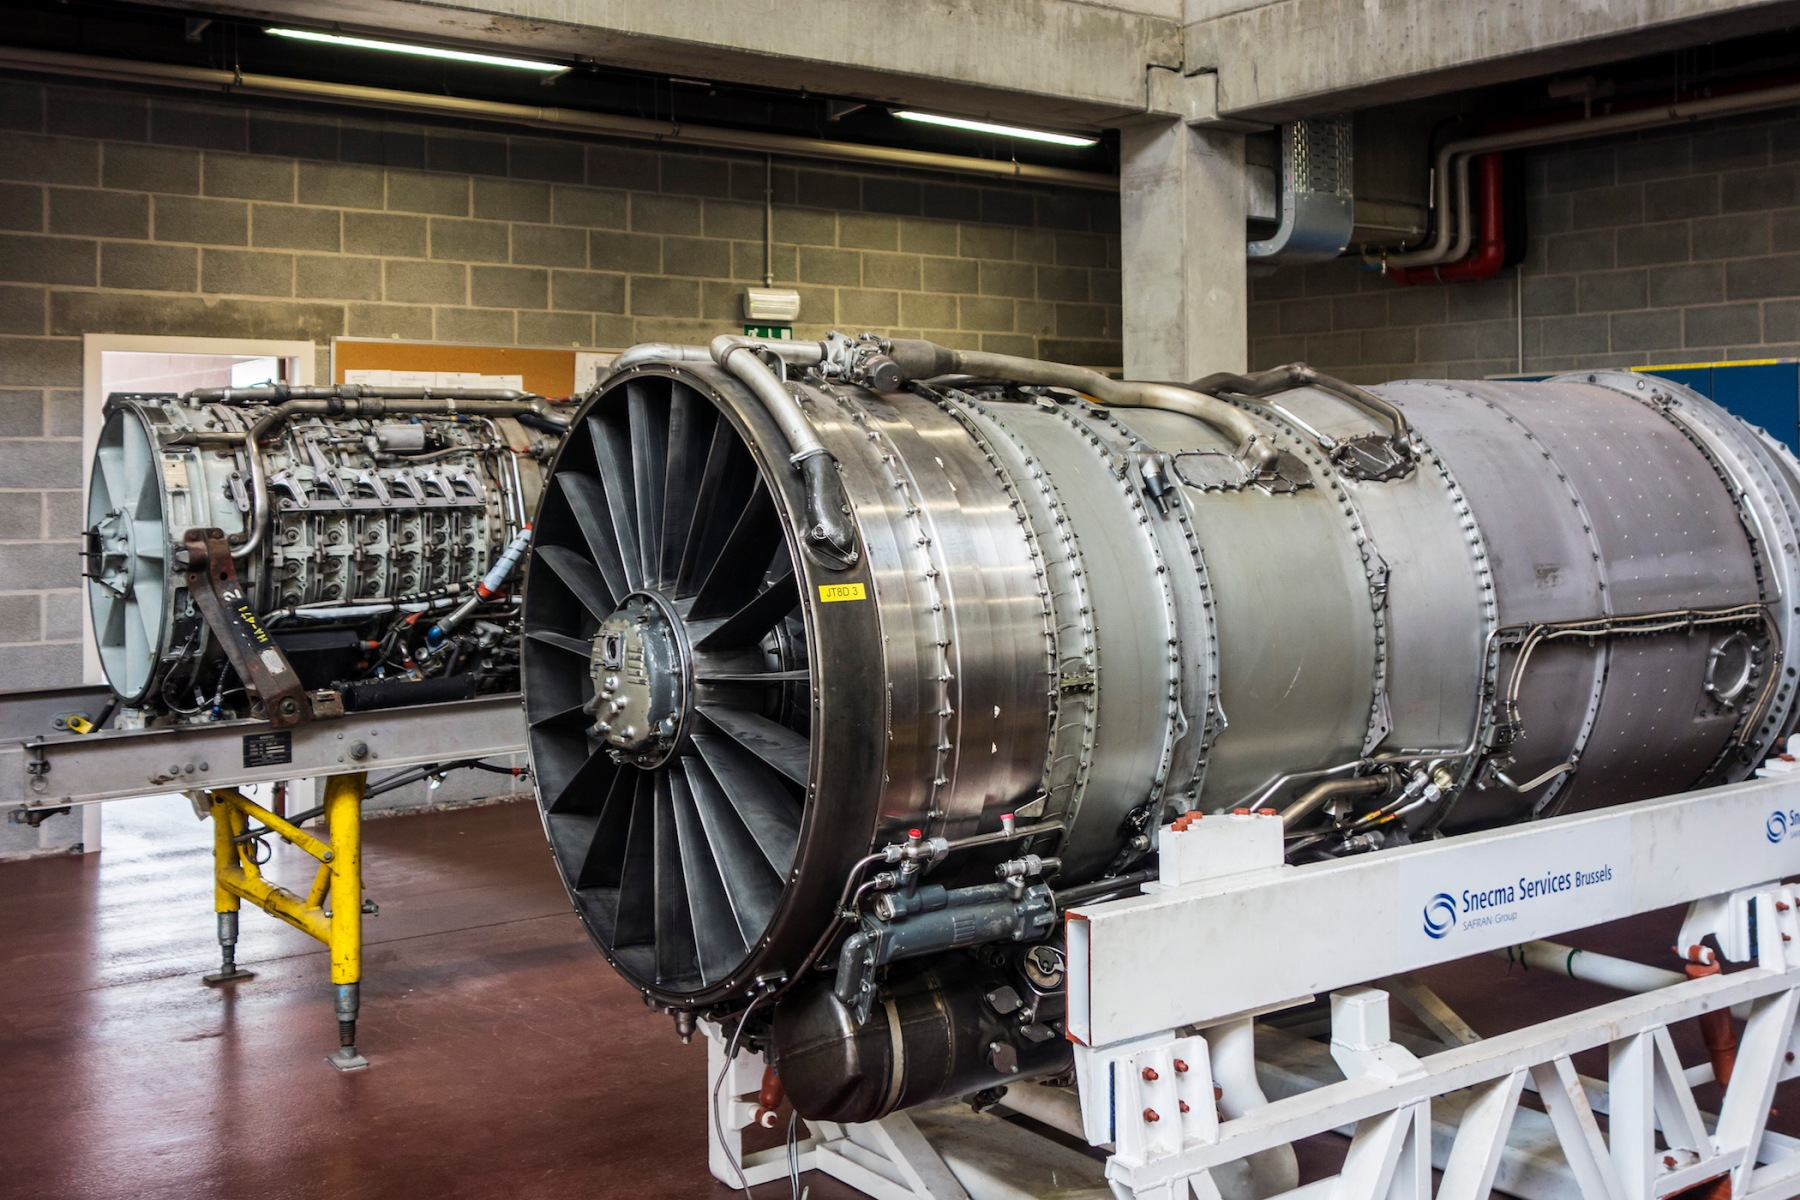 Jet engines for teaching purposes in workshop of the Vlaams Luchtvaartopleidingscentrum / VLOC / Flemish aviation training center in Ostend, Belgium. The company Magnix hopes to soon replace plane engines with an electric motor. (Photo by: Arterra/UIG via Getty Images)